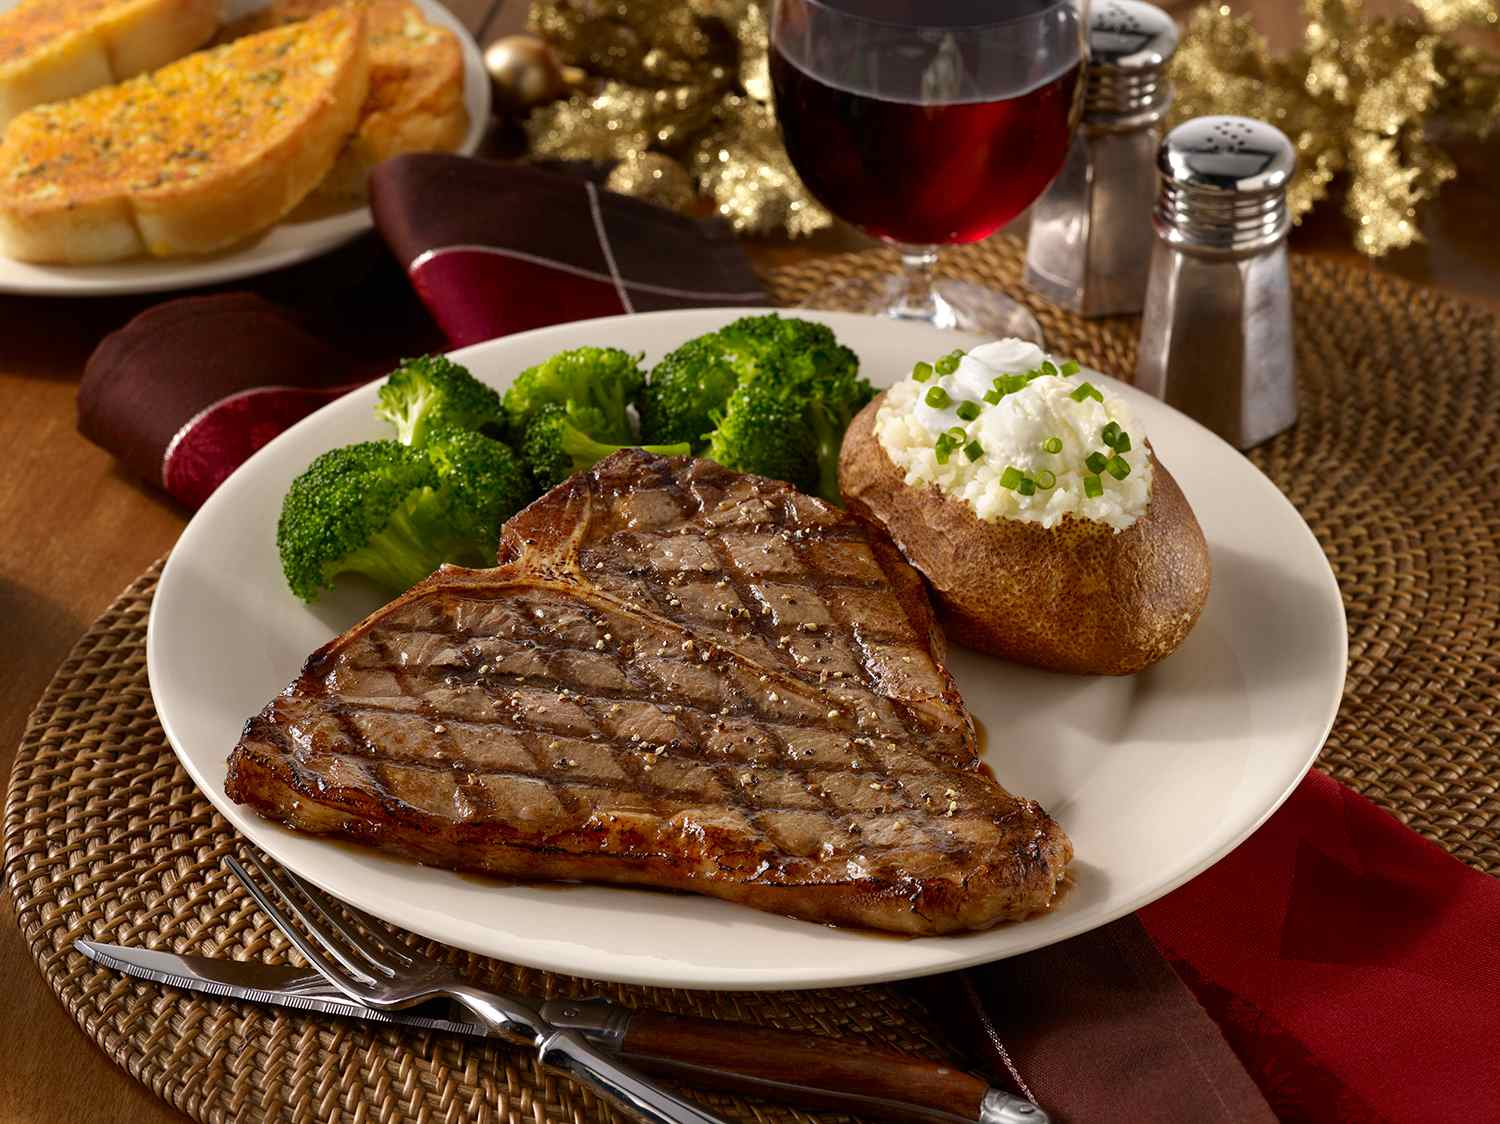 T-bone steak with a loaded baked potato, broccoli, garlic bread and a glass of red wine in a holiday setting.